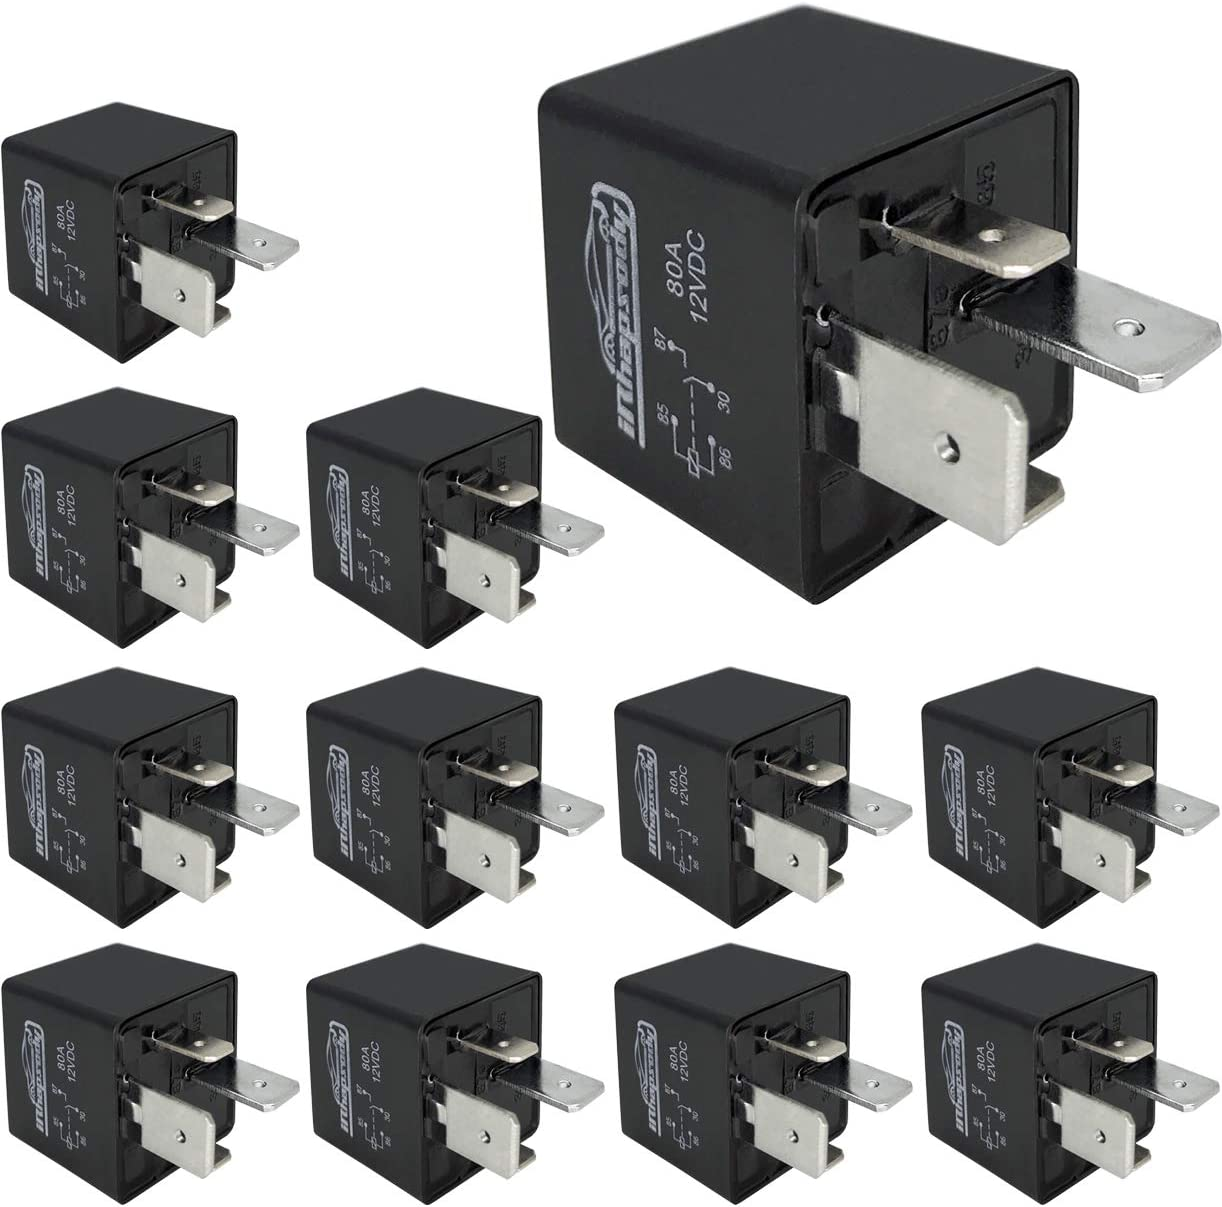 IRHAPSODY 4 Pin Heavy Duty 80 AMP Relay Switch High Power 12 V DC SPST Bosch Style Automotive Electrical Relay 12 Pack